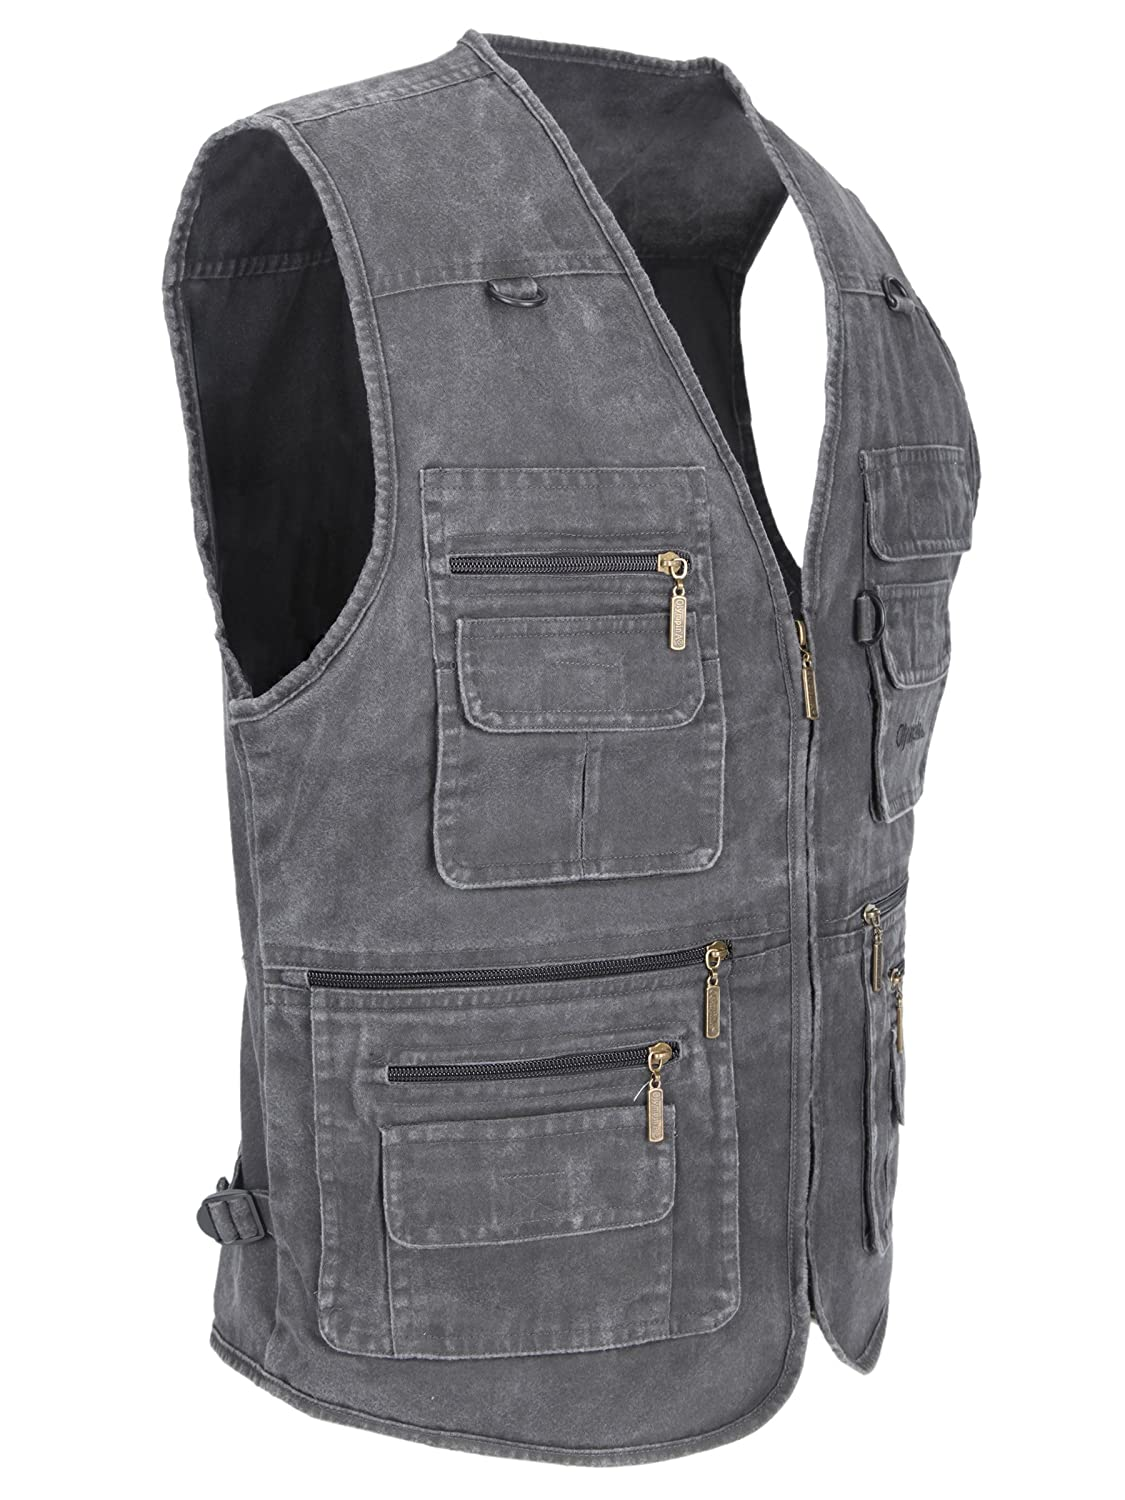 LUSI MADAM Mens Outdoor Vest Multi-Pockets Casual Vest for Work Fishing Photography Journalist